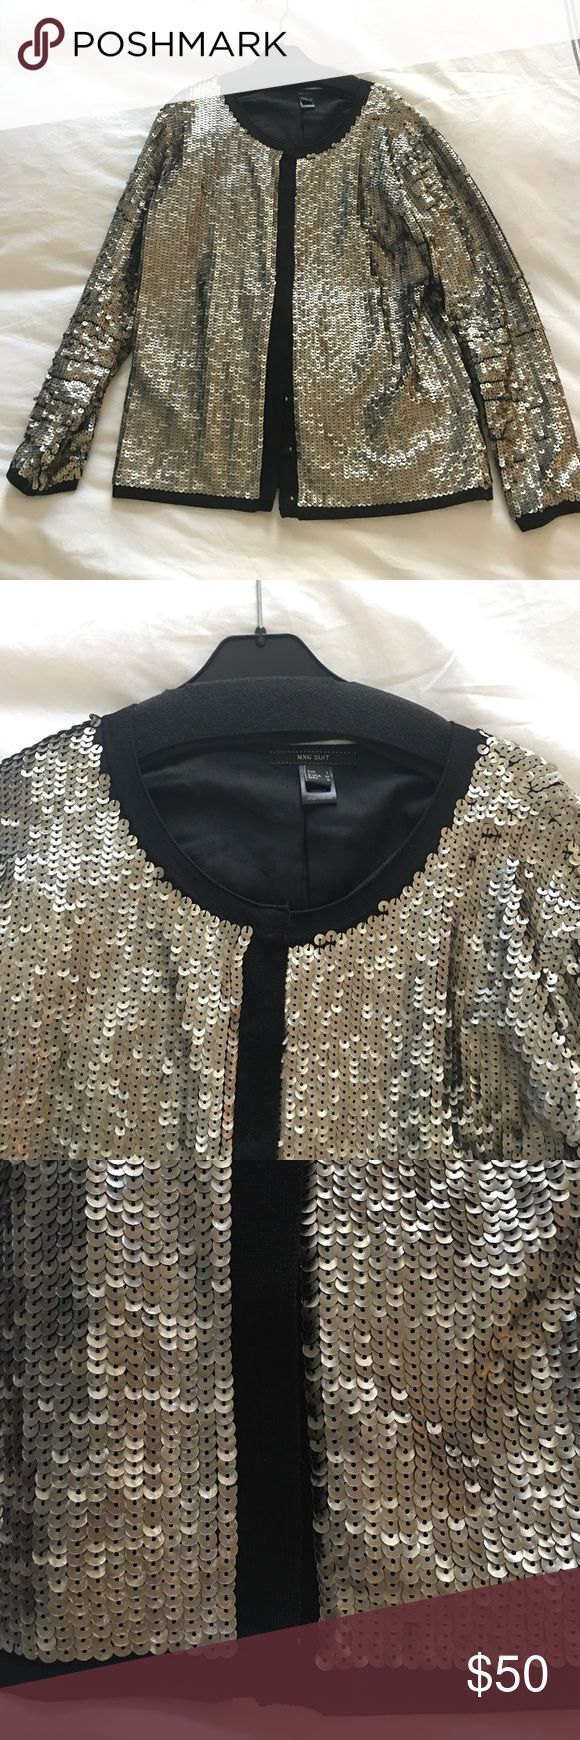 Mango Suit Sequin Jacket - Like new Mango Suit Sequin Jacket. Light gold sequins with black lining and accents. Like new. Only worn once. All sequins intact. Hidden snap closures. Perfect to dress up any outfit. Mango Jackets & Coats Blazers